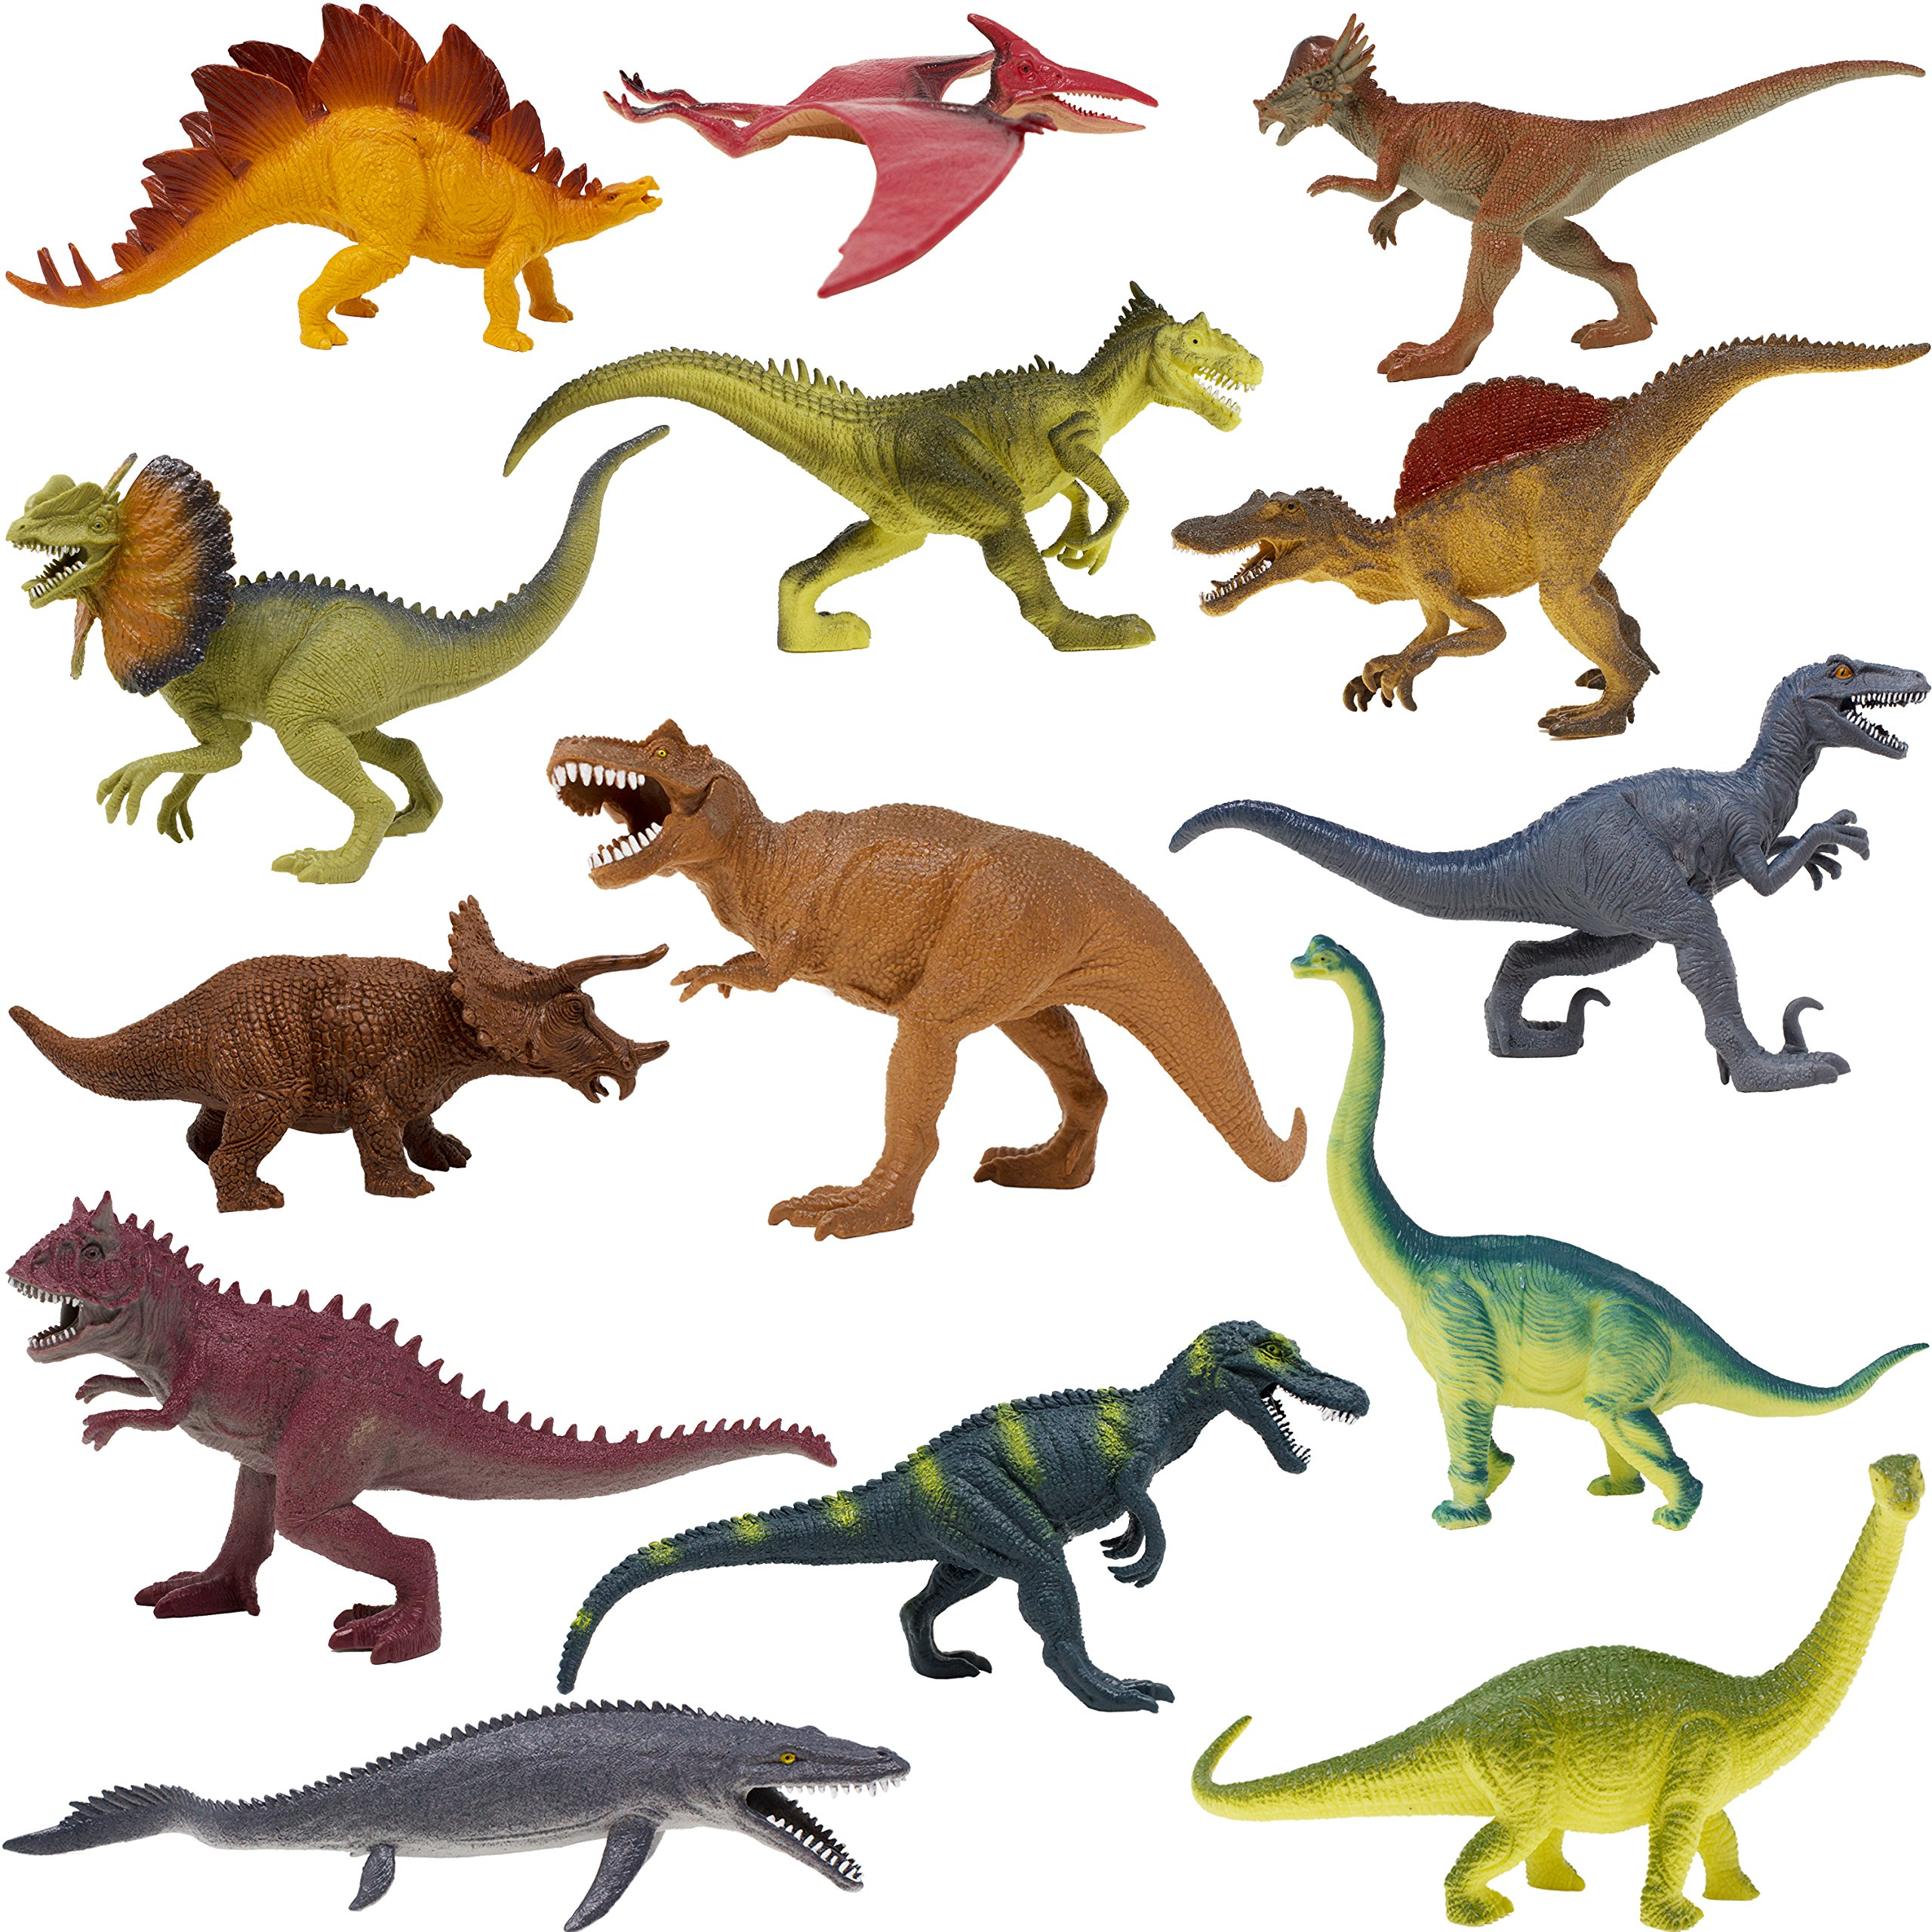 Boley 14 Pack 10'' Educational Dinosaur Toys - Kids Realistic Toy Jurassic Dinosaur Figures for Kids and Toddler Education! (T-rex, Triceratops, Velociraptor, etc) Great Gift Set and Party Favors!